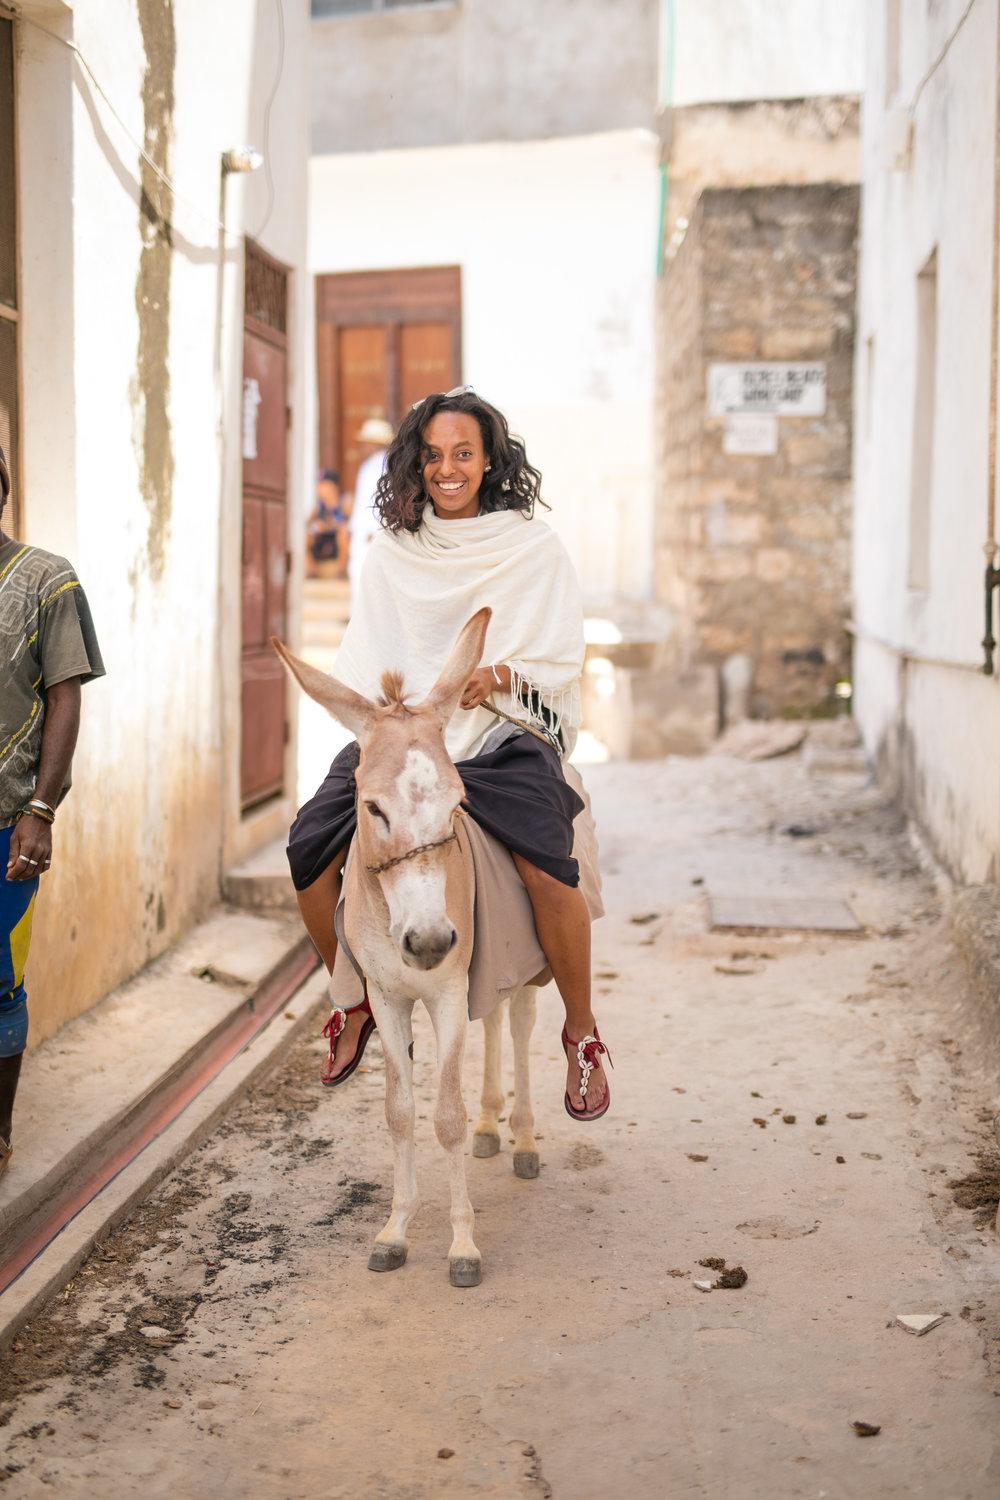 Katarina enjoying a ride through Lamu Town